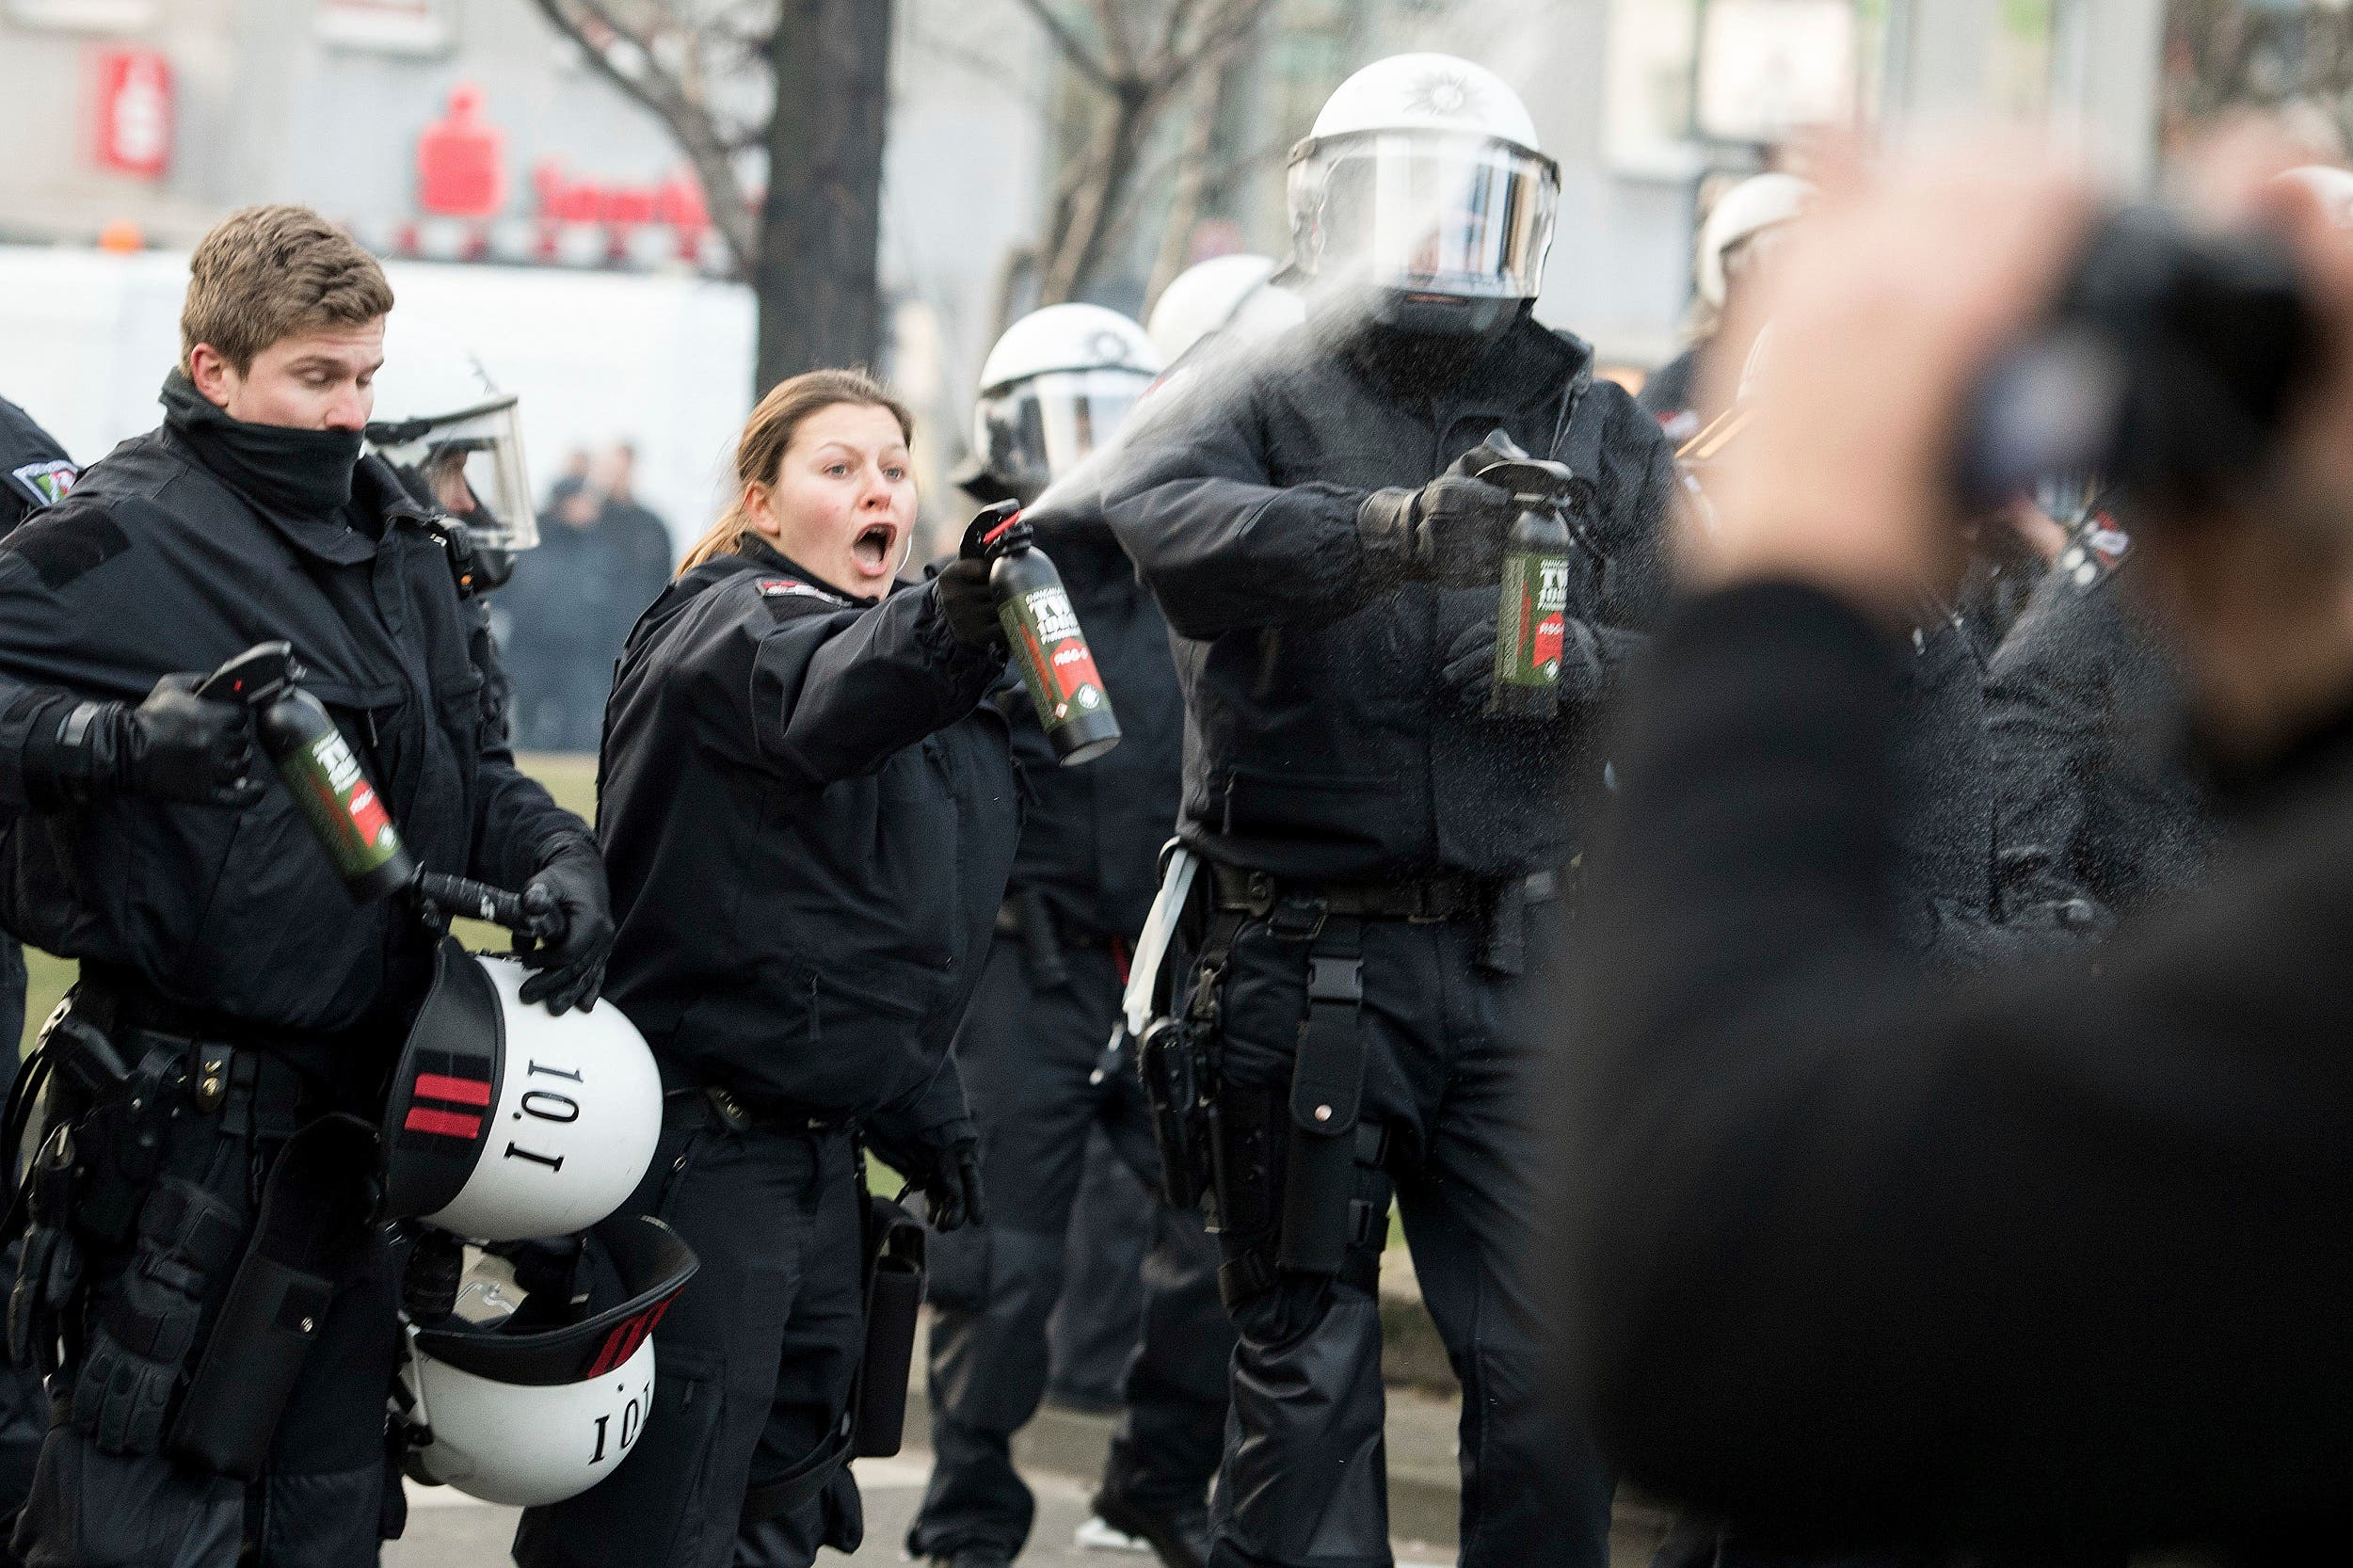 Police uses pepper spray as they clash with demonstrators in Cologne, Germany Saturday, Jan. 27, 2018 after Kurdish immigrants and supporters protested against a Turkish military operation in a Kurdish enclave in northern Syria. (AP)